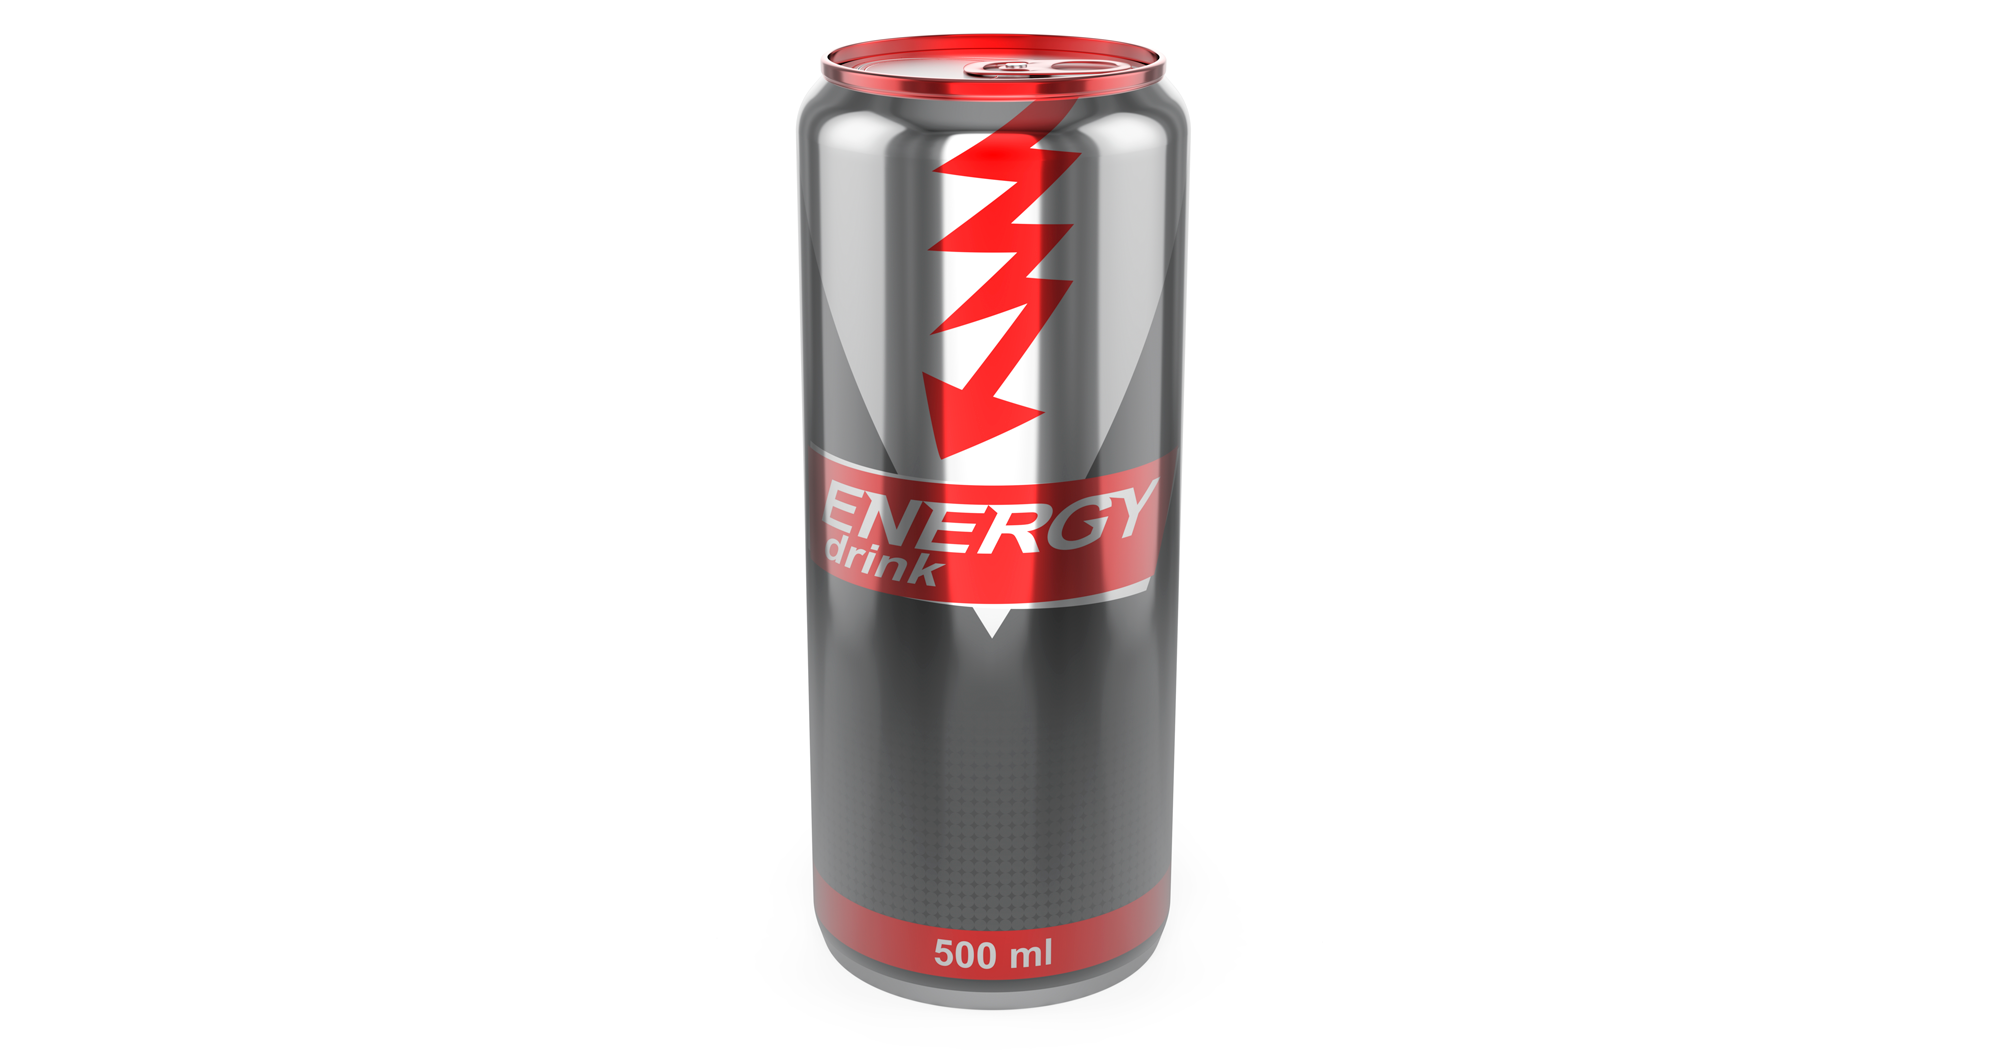 Energy Drinks Are Basically Poison Says Science, Common Sense